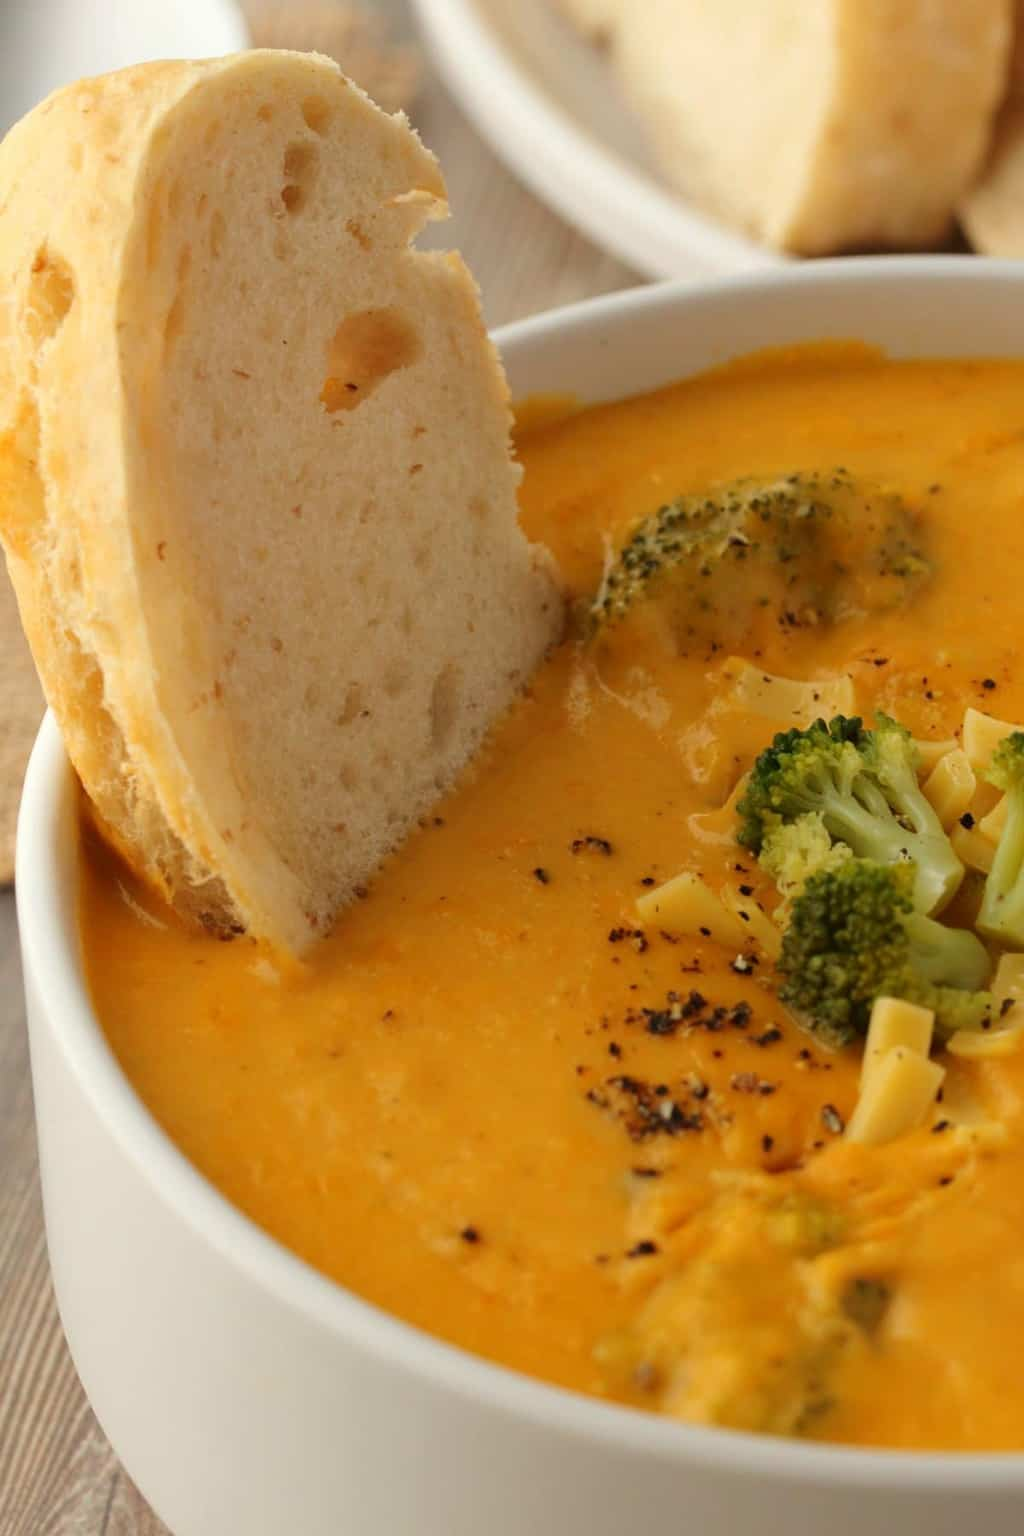 A piece of bread dipping into a bowl of vegan broccoli cheese soup.